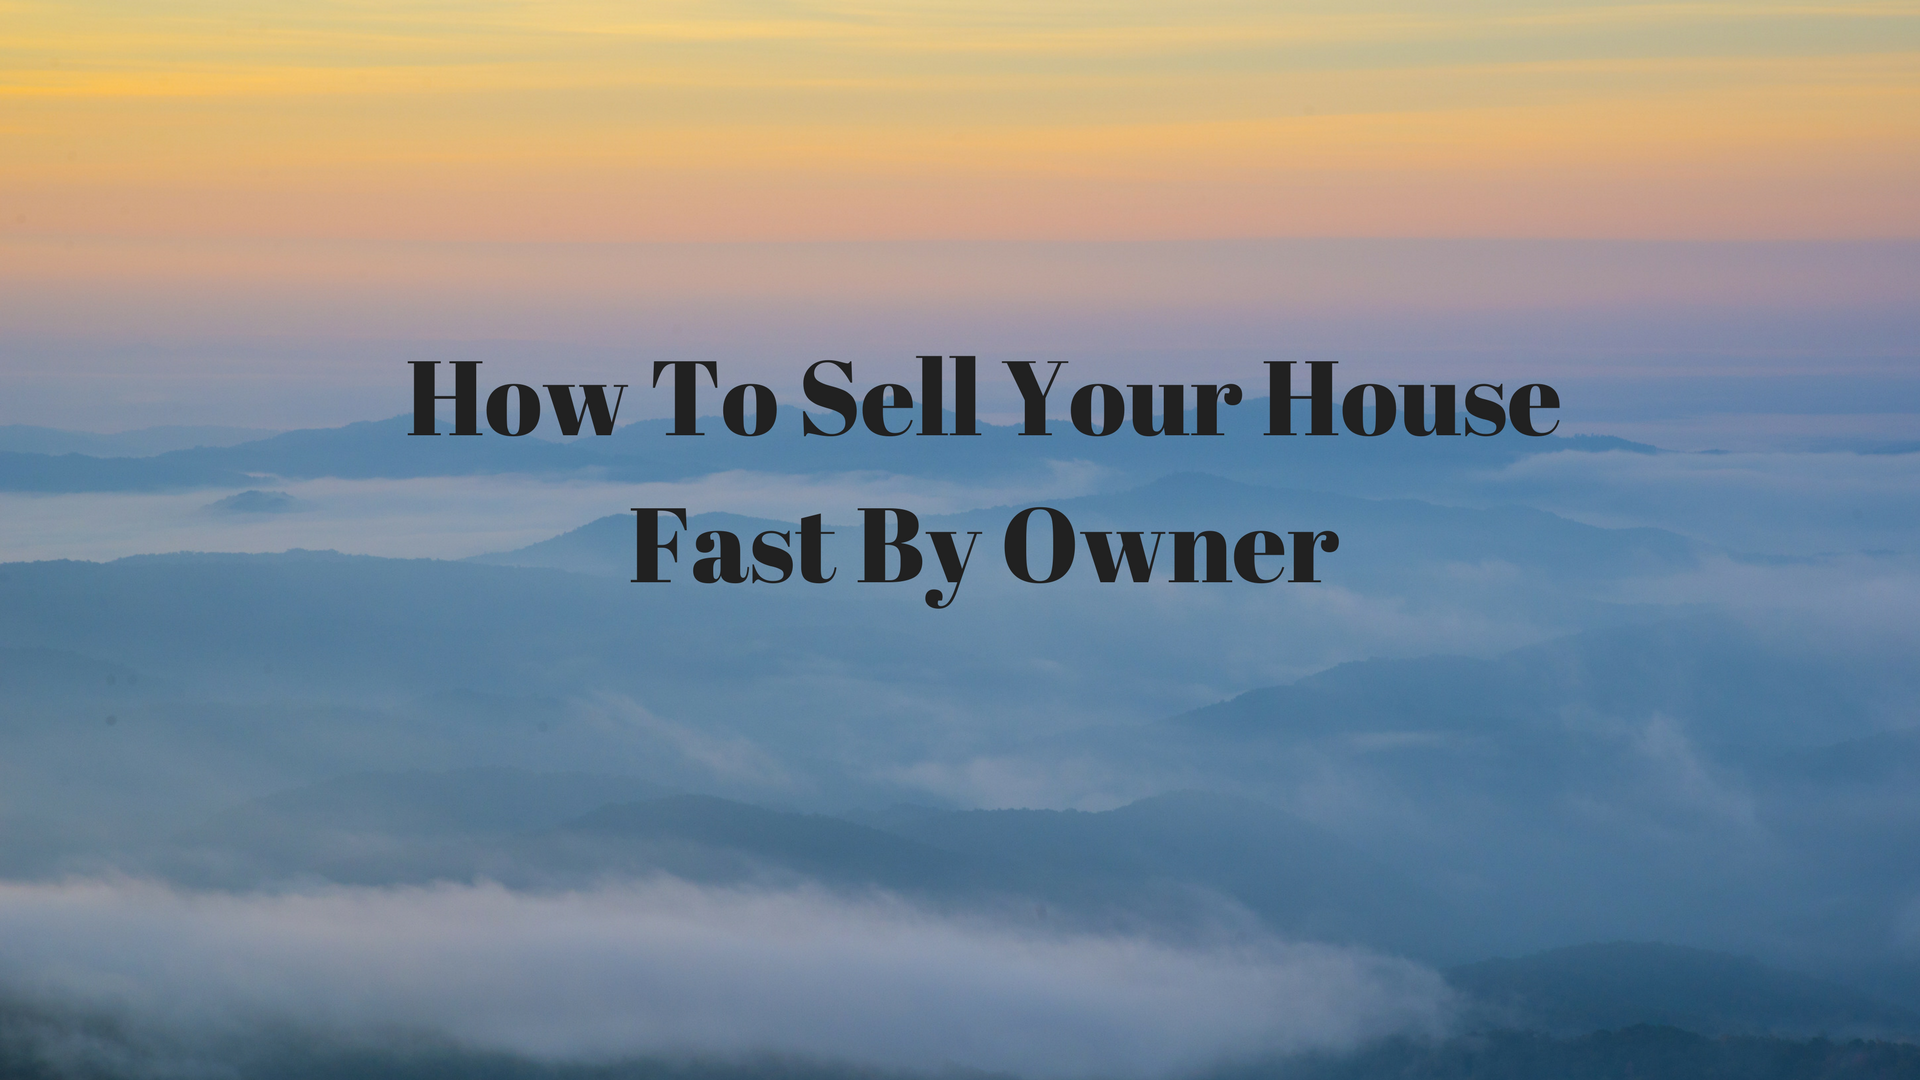 how to sell a house by owner using mls realtor listings